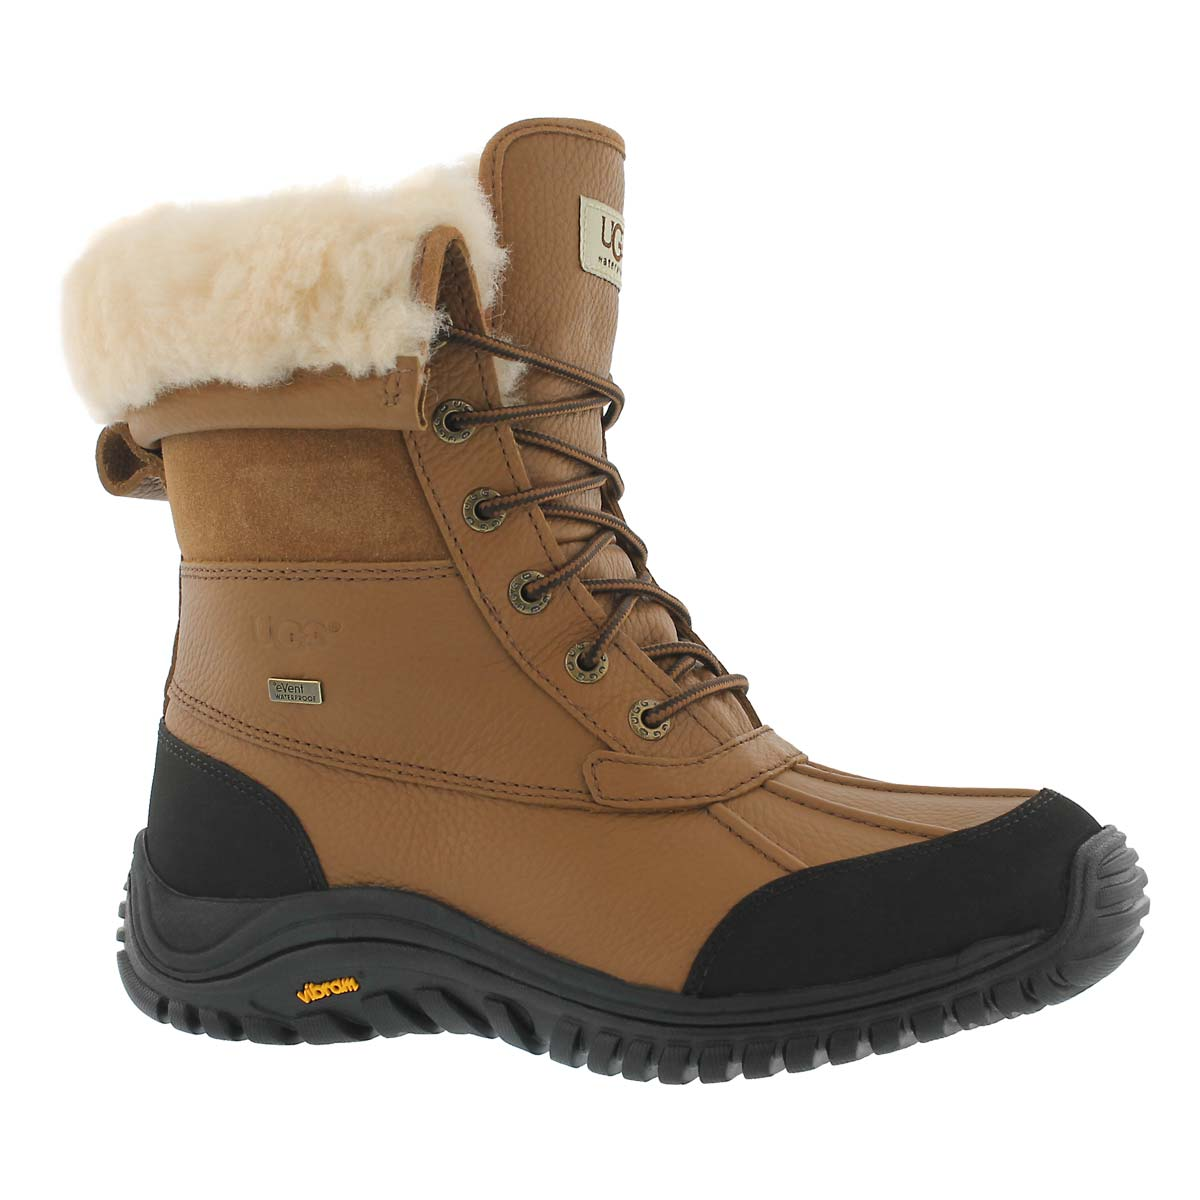 Lds Adirondack II otter winter boot